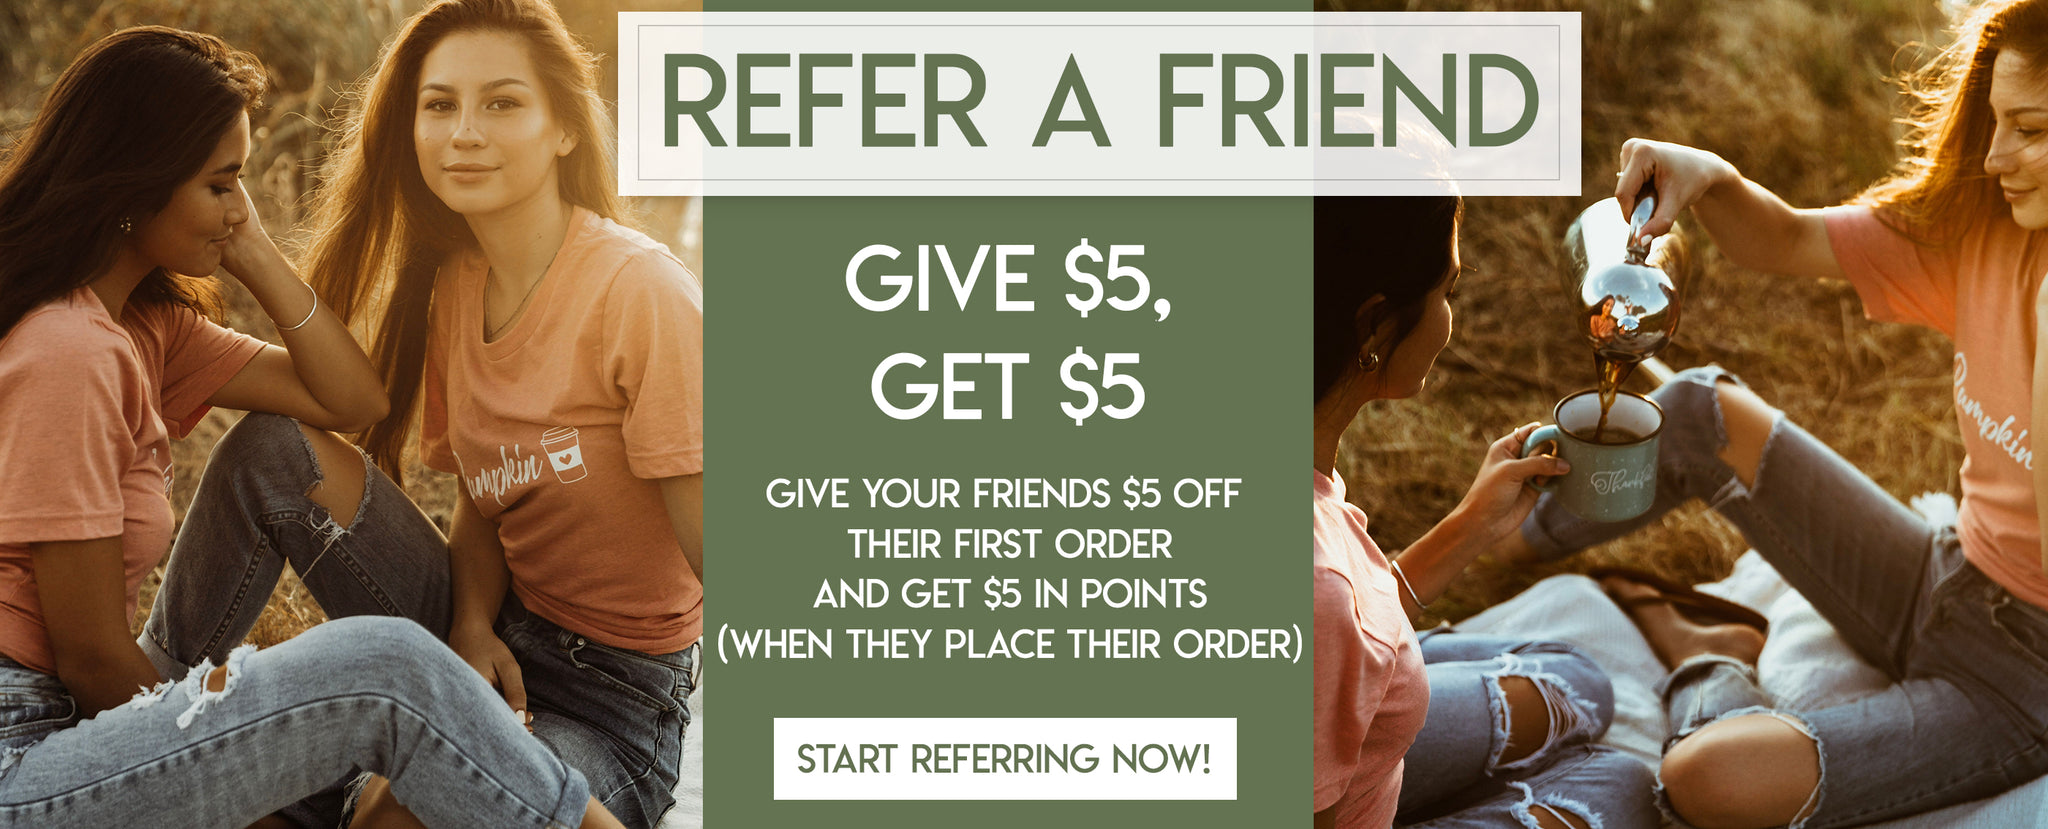 Refer a Friend - Pretty Collected Rewards Program